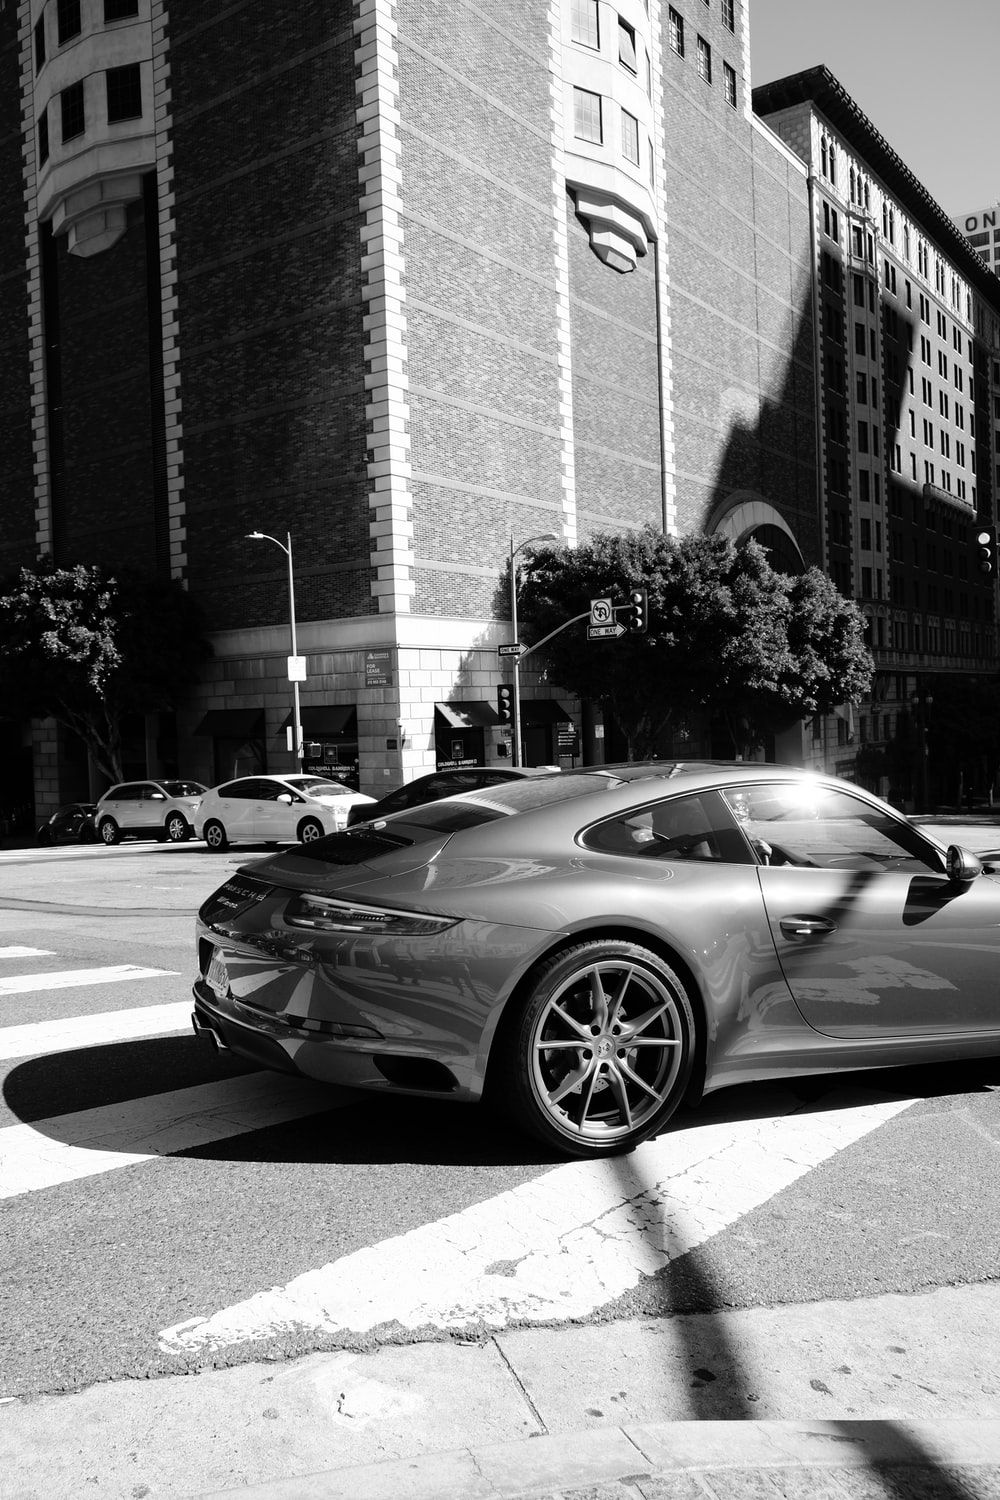 grayscale photography of vehicle on road